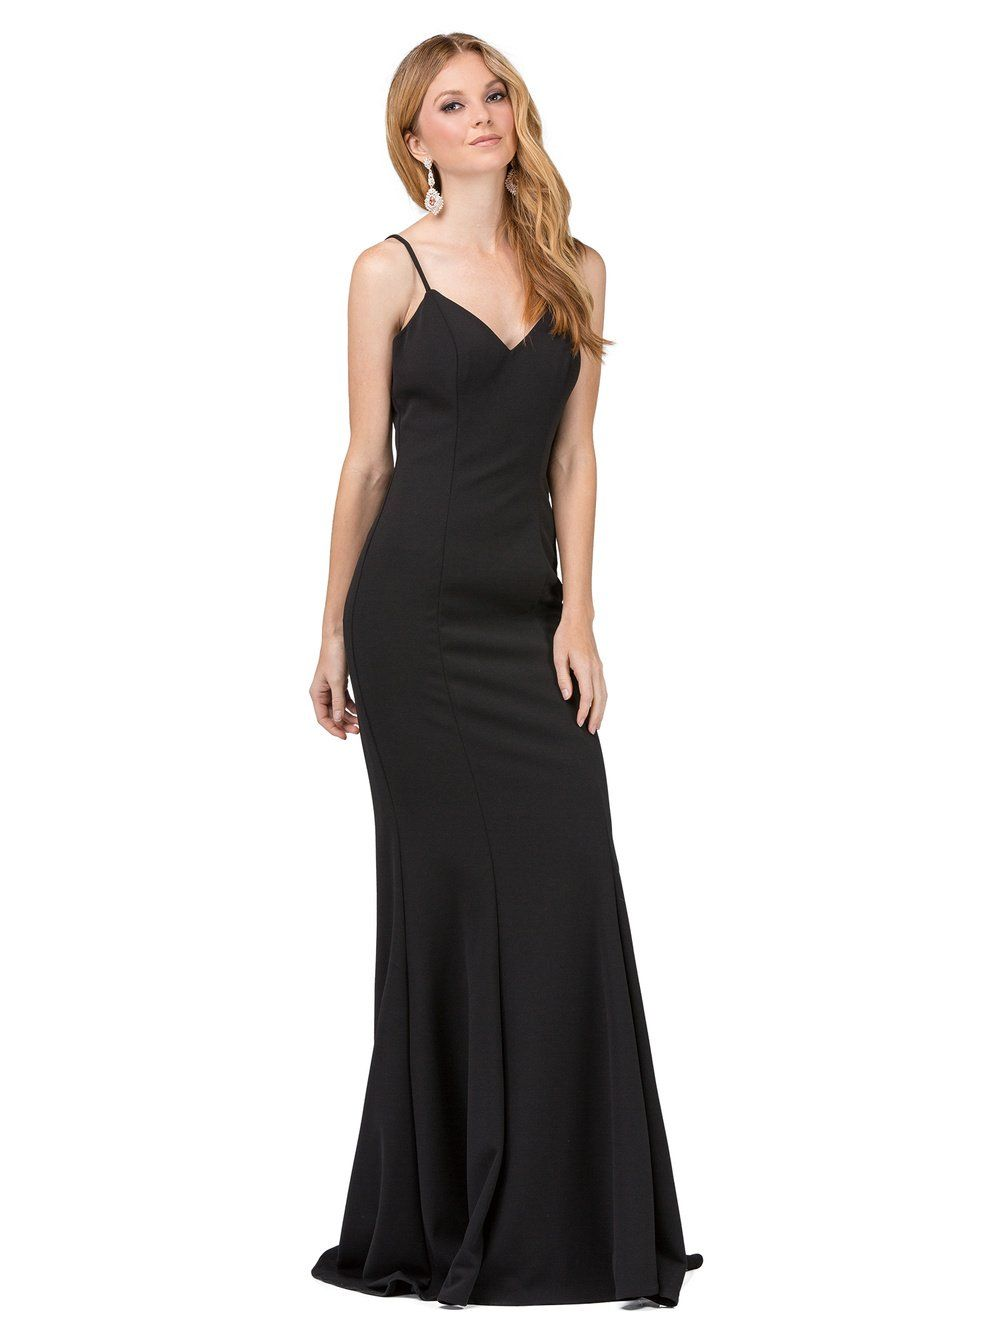 Simple long evening dress DQ2264